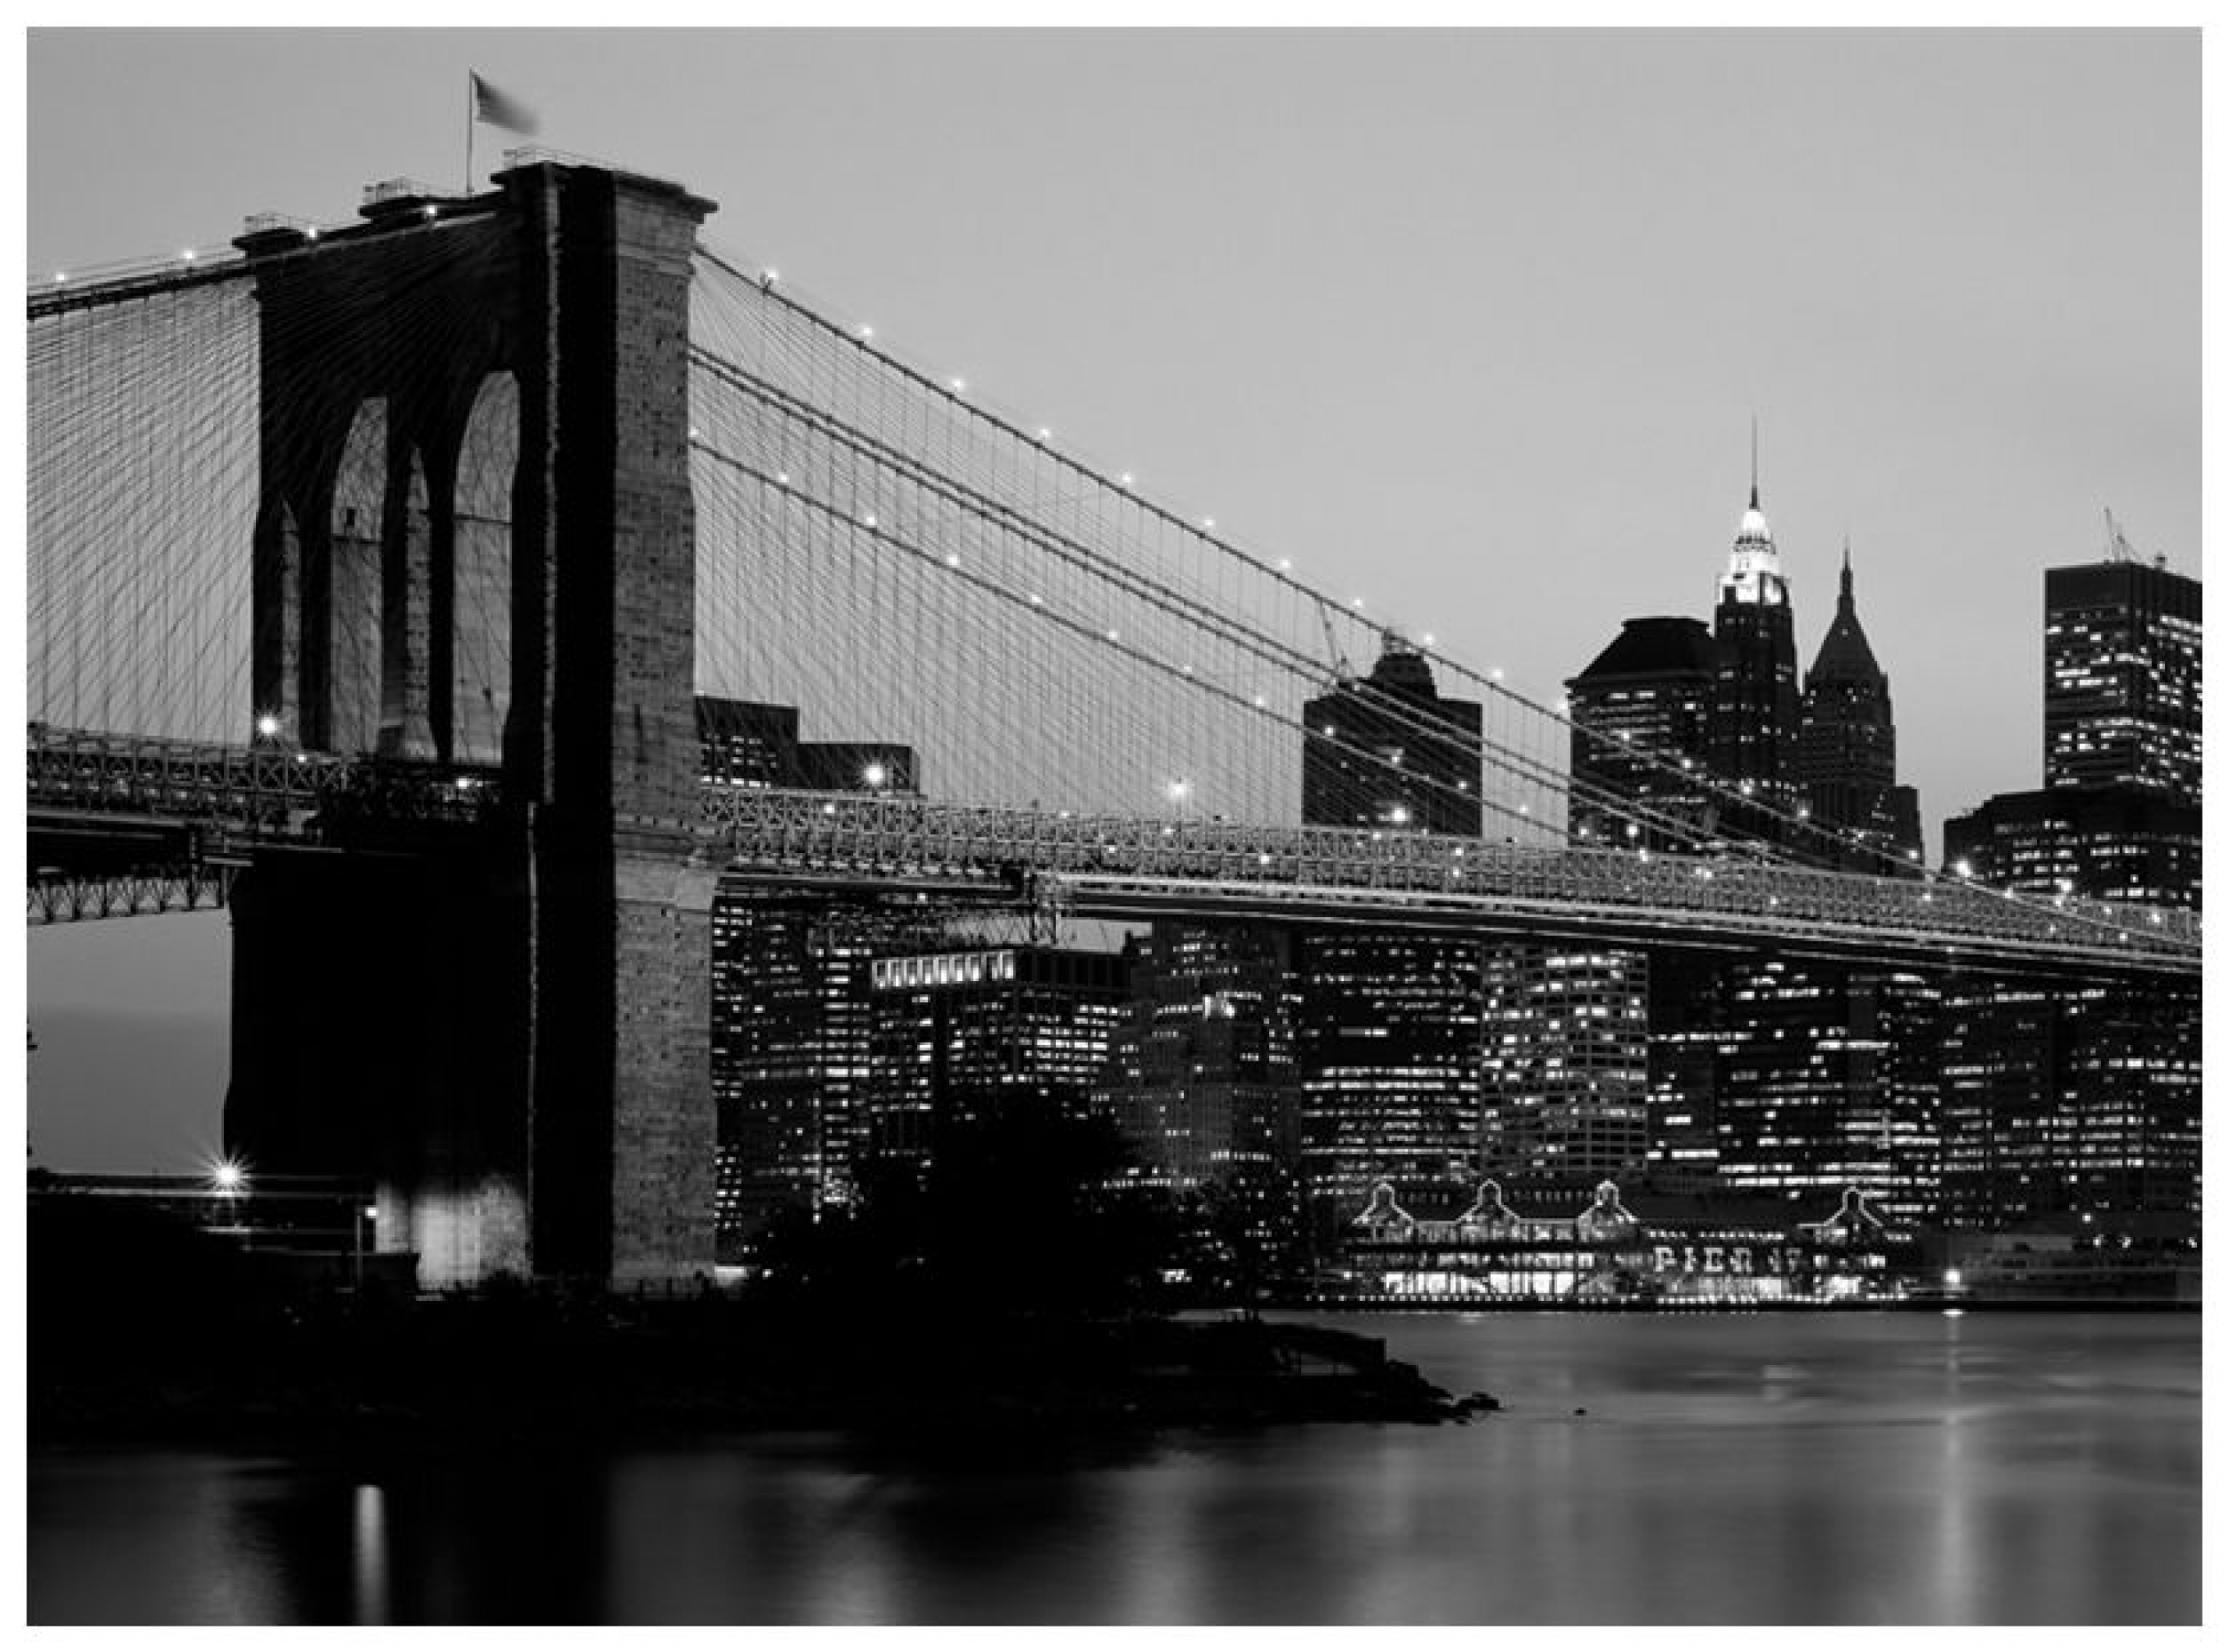 New York City Pictures Black and White Skyline Wallpaper HD 7737 2717x2014